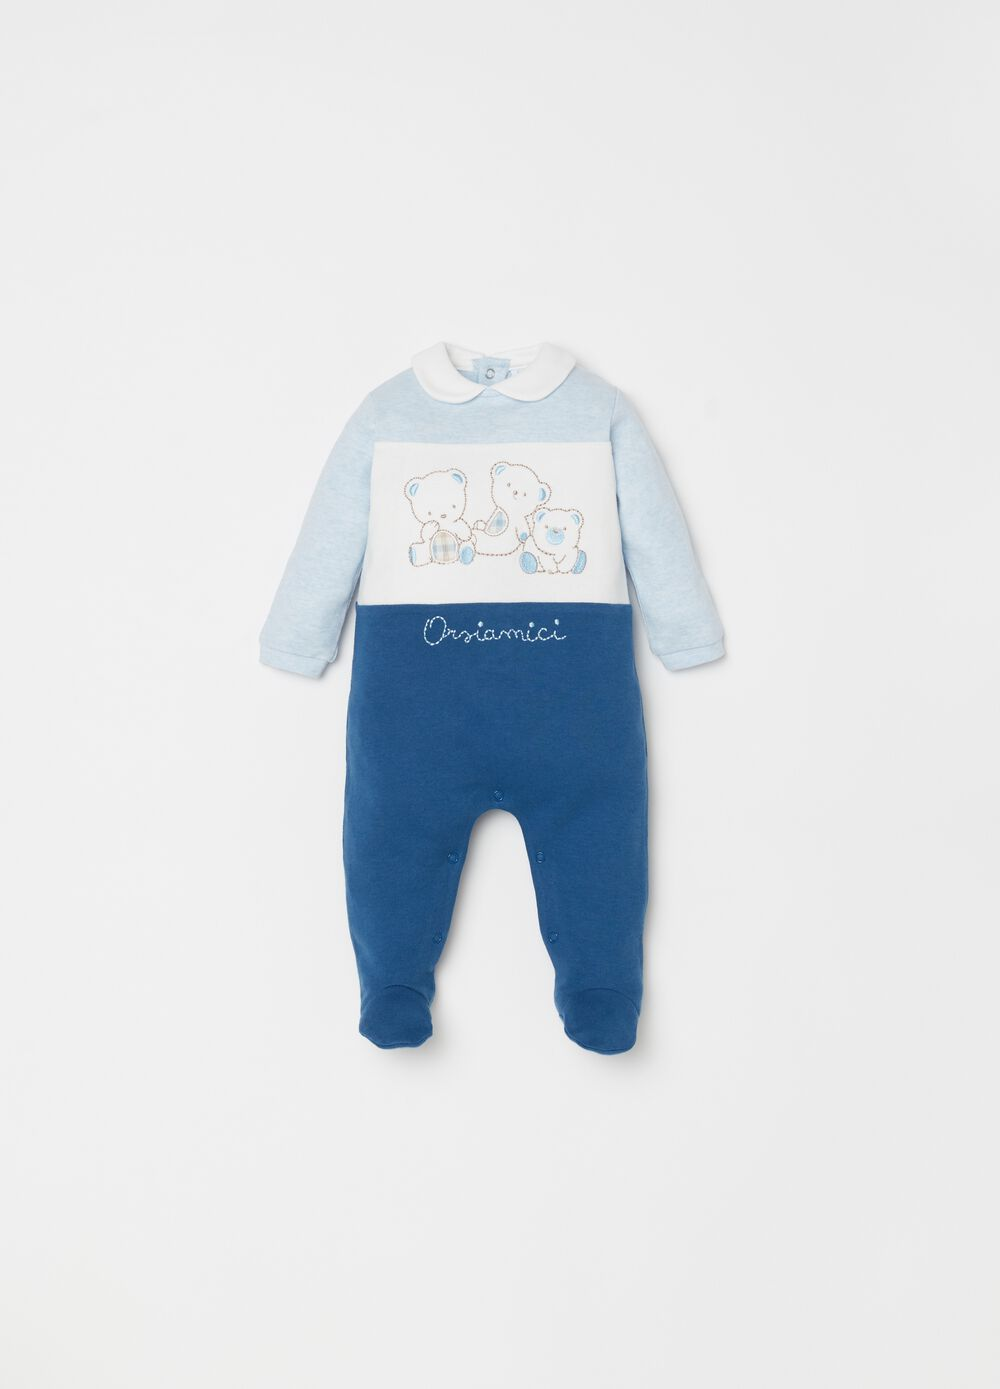 100% cotton onesie with feet and bear embroidery